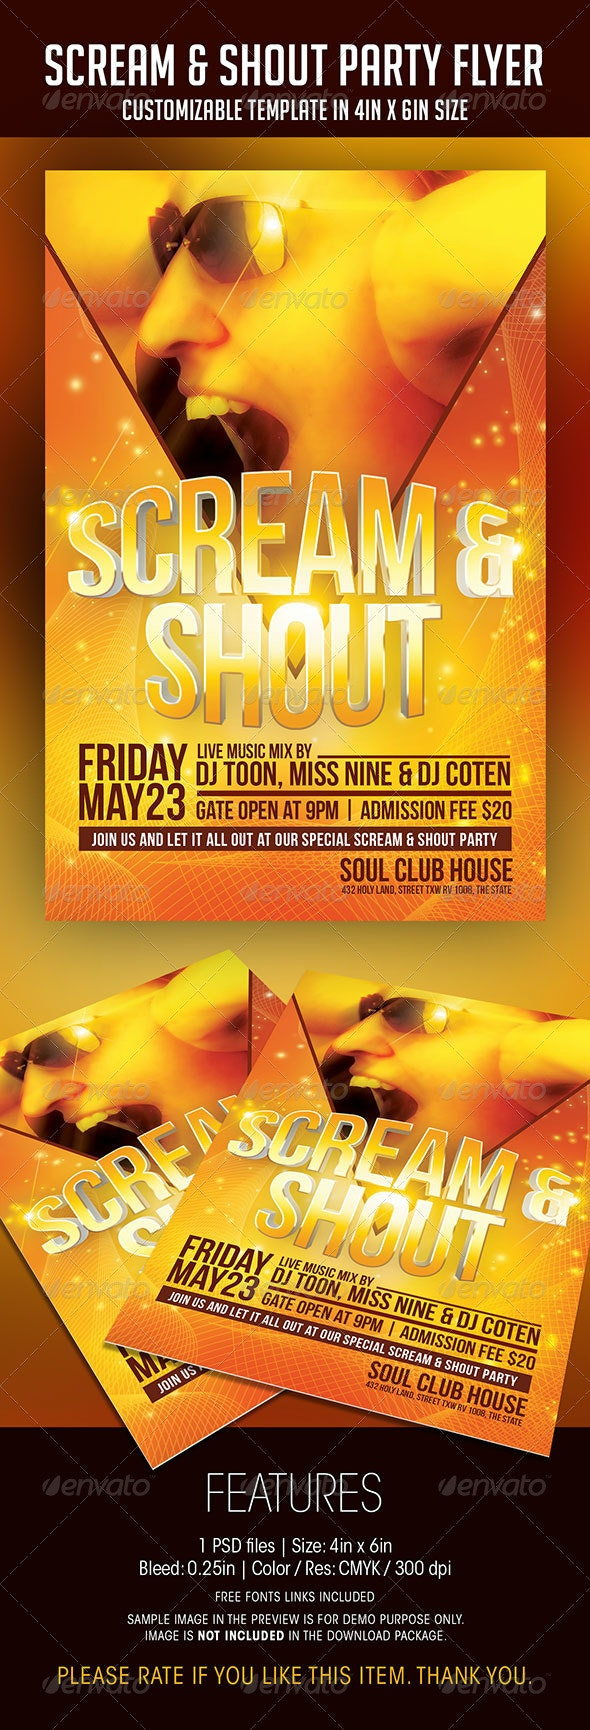 Scream And Shout Party Flyer - Clubs & Parties Events